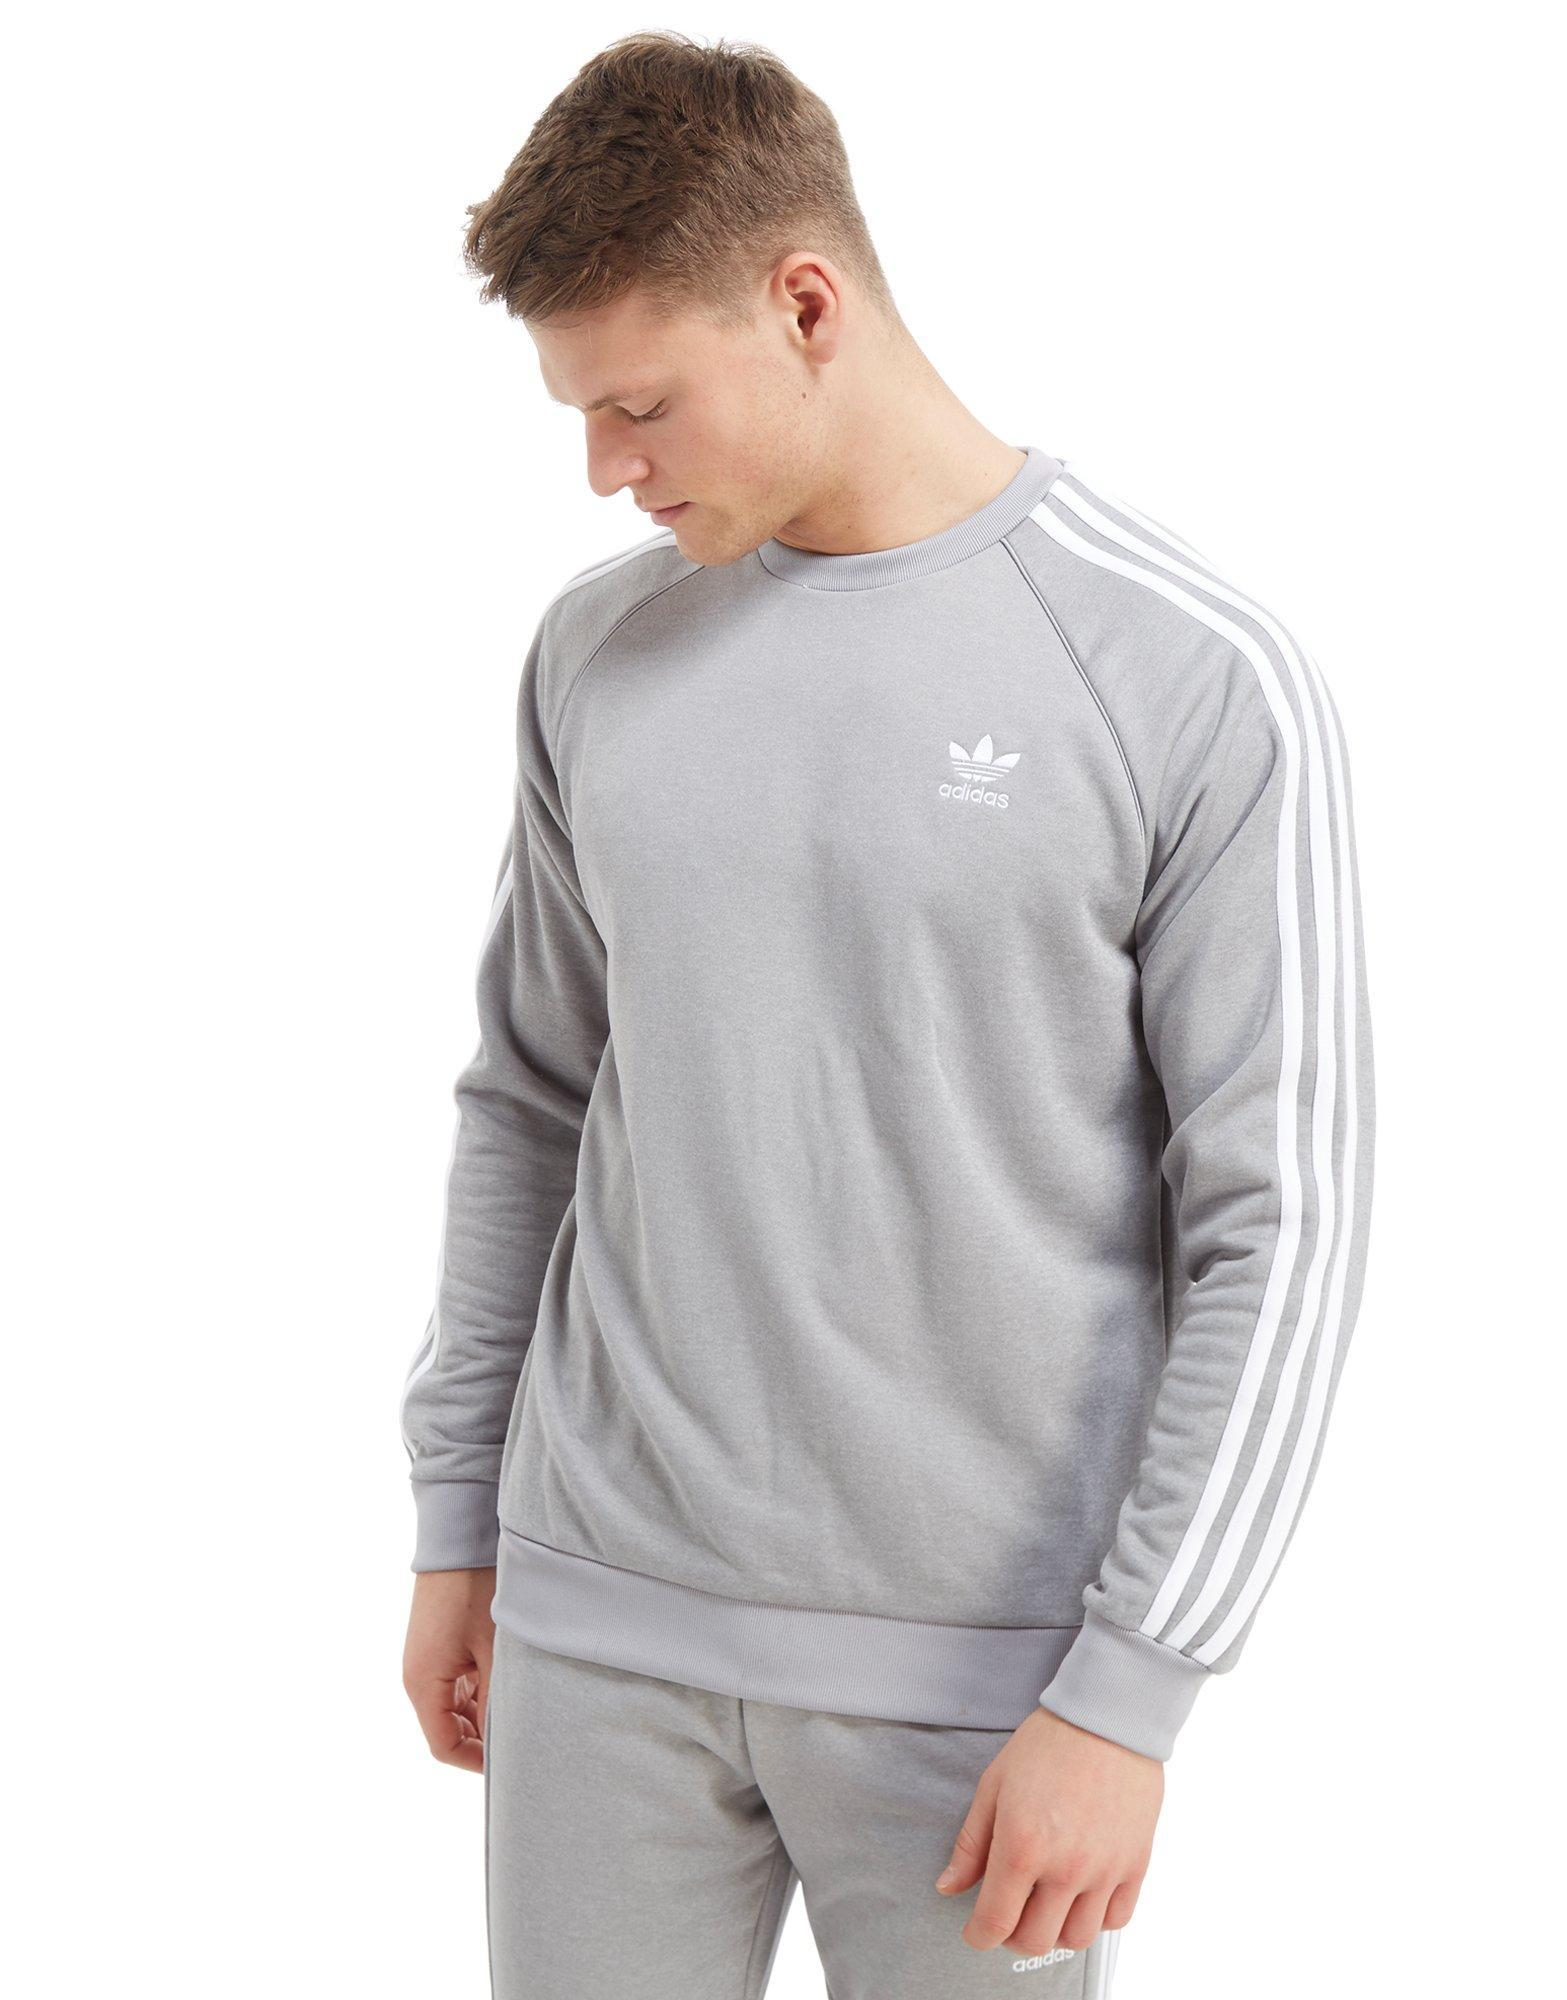 Superstar Crew Adidas Gray Sweatshirt For Originals Men ukXZiwTOPl